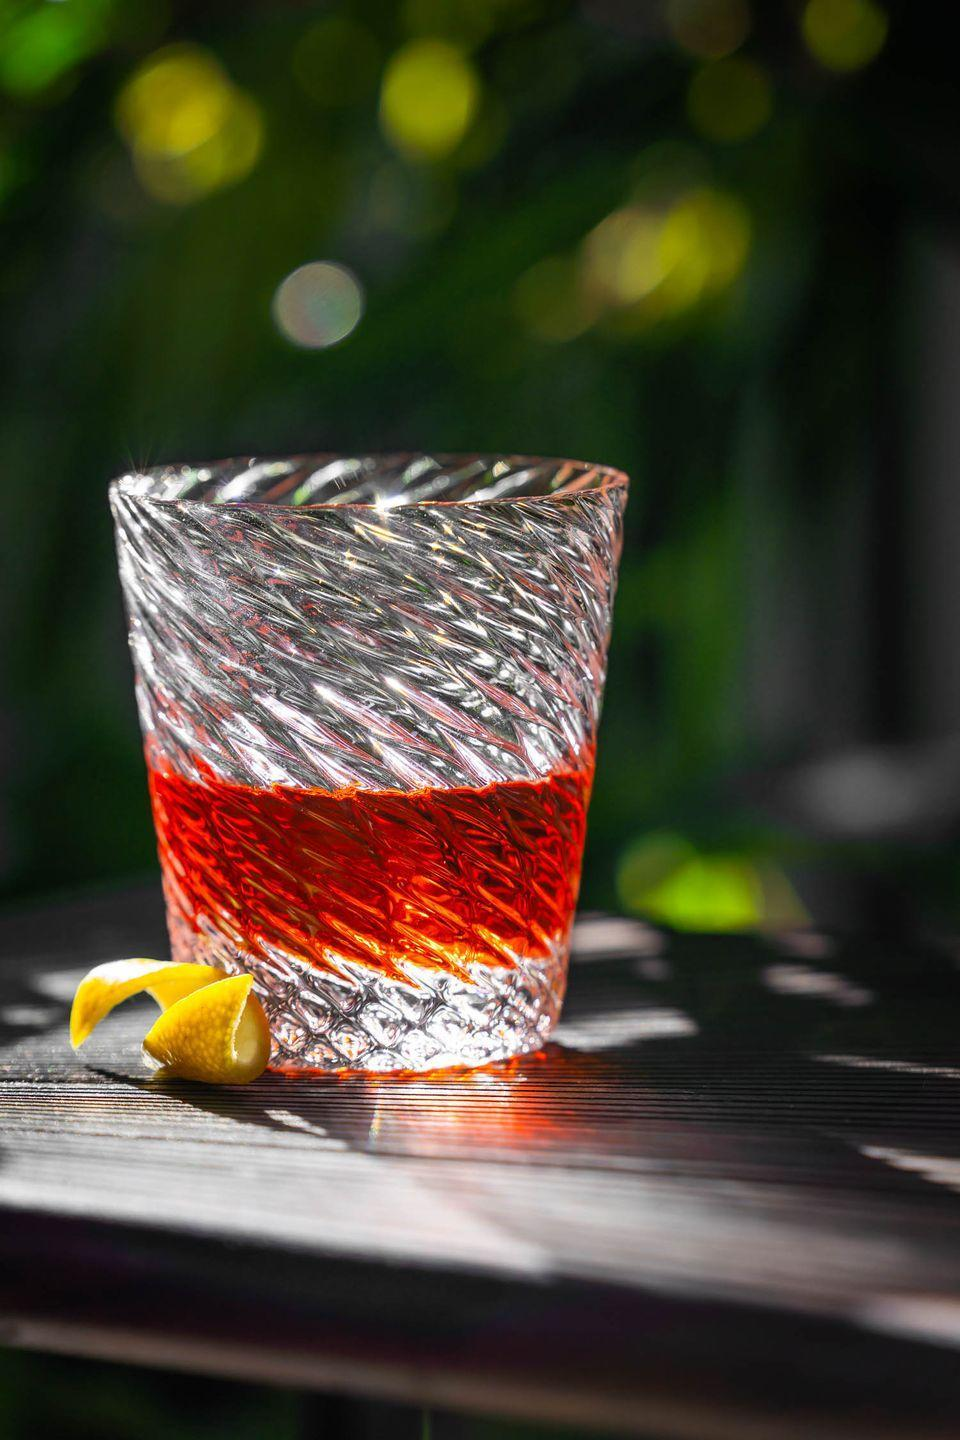 """<p>More than 180 years after it was first stirred up, the Sazerac is still one of NOLA's most popular drinks (not to mention <a href=""""https://www.nytimes.com/2008/07/16/dining/16pour.html"""" rel=""""nofollow noopener"""" target=""""_blank"""" data-ylk=""""slk:it's official cocktail"""" class=""""link rapid-noclick-resp"""">it's official cocktail</a>)—and it's easy to see why. Not only is the classic drink quite easy to make (all you need is rye whiskey, Peychaud's bitters, Angostura bitters, abstinthe, and a sugar cube), but it's also just about as stiff as they come.</p><p><a class=""""link rapid-noclick-resp"""" href=""""http://www.gastronomista.com/2014/05/trust-me-youre-drinking-your-sazerac.html#.YAn0i5NKg6i"""" rel=""""nofollow noopener"""" target=""""_blank"""" data-ylk=""""slk:GET THE RECIPE"""">GET THE RECIPE</a><br></p>"""